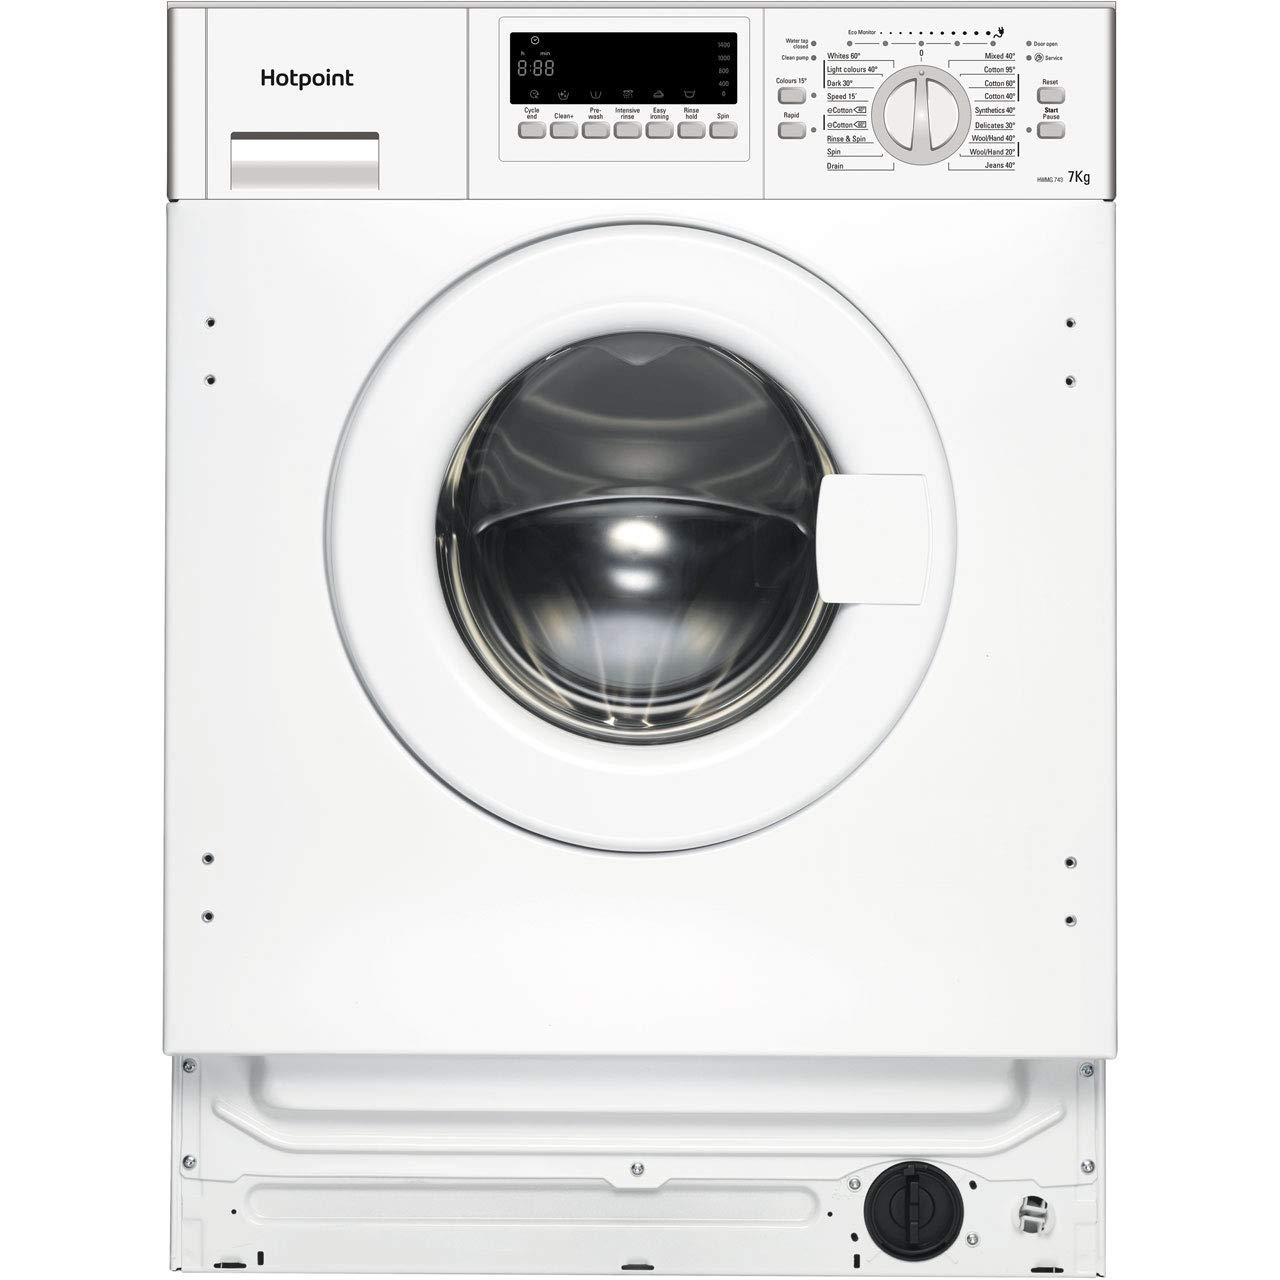 Hotpoint Hwmg743 7kg Fully Integrated Washing Machine Appliance City Hoover Wiring Diagram Home